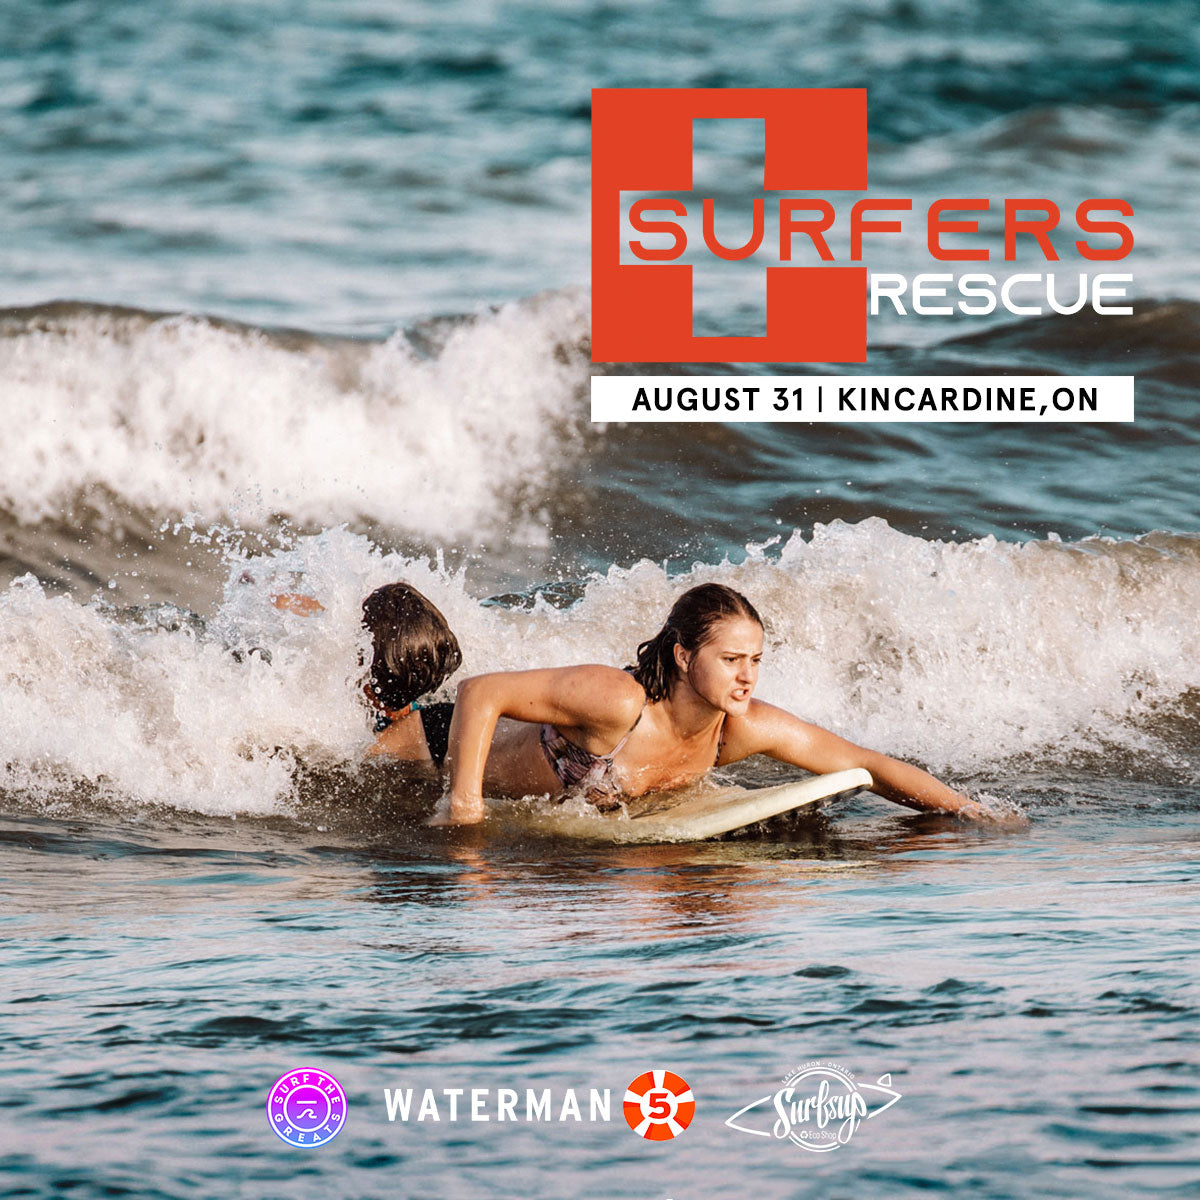 Surfer's Rescue Course Kincardine, ON Great Lakes ISA International Surfing Association